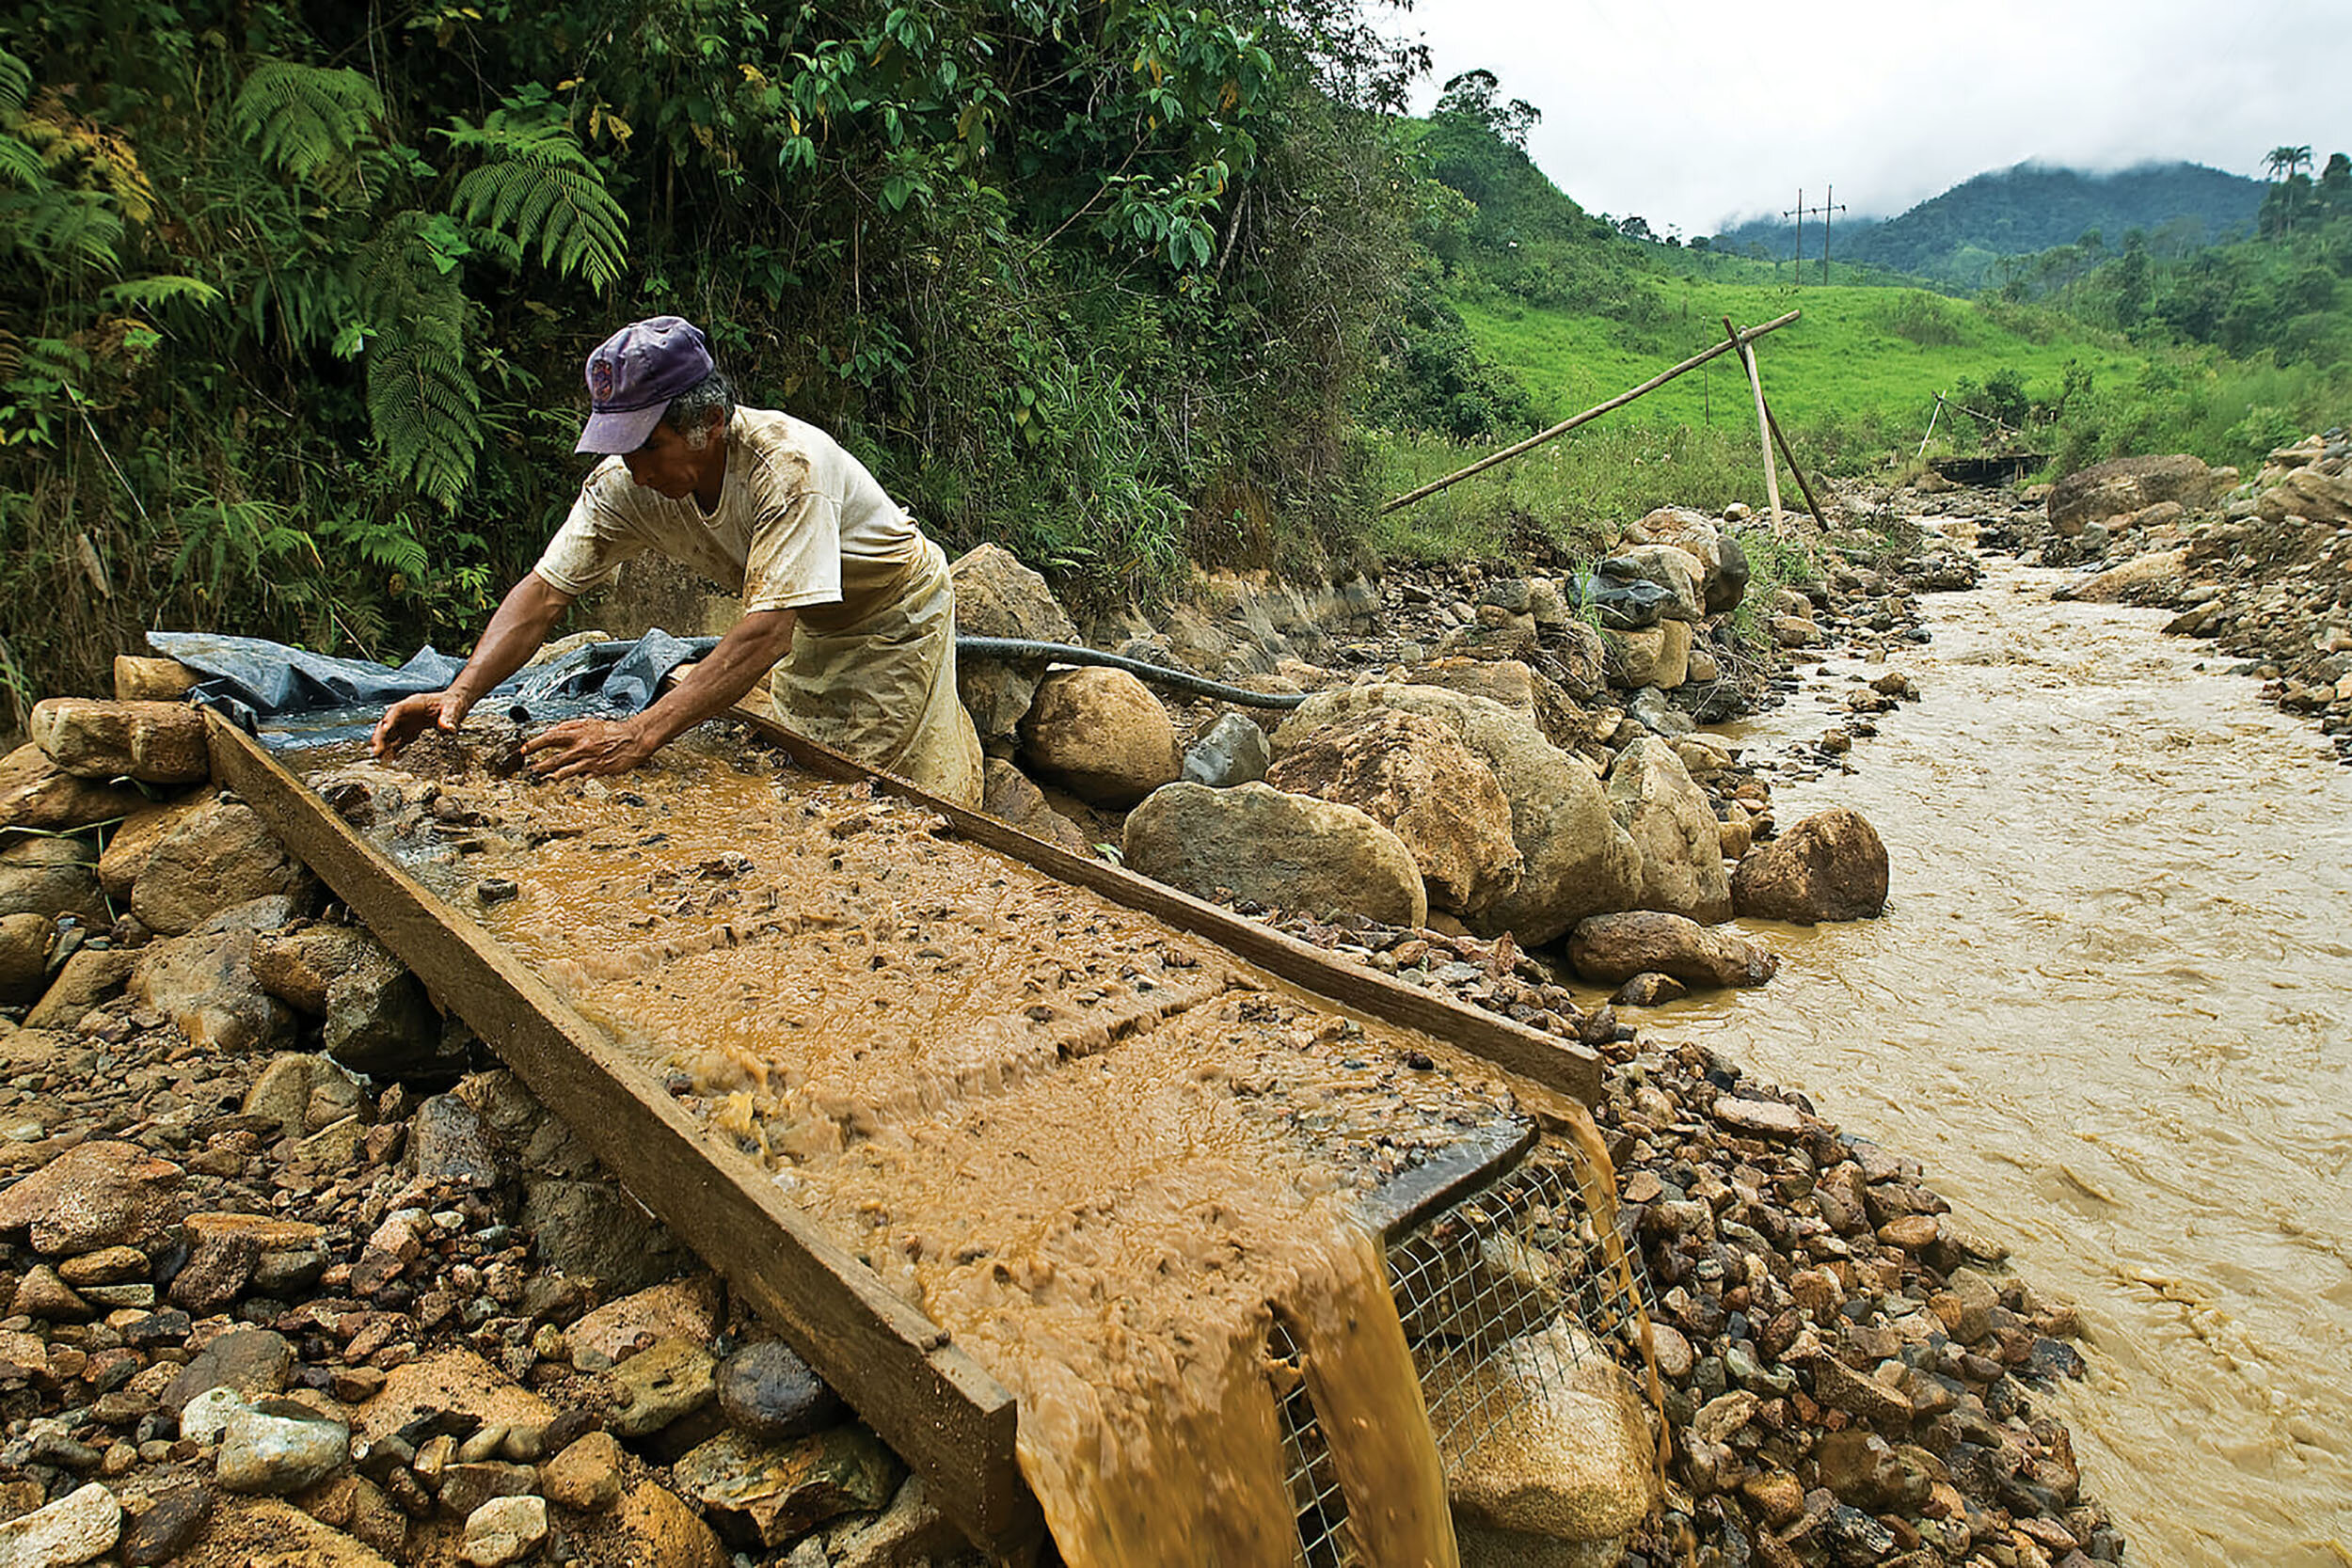 Illegal mining in South American countries such as Columbia (pictured above) have increased to fulfill large companies' necessity for gold and precious metals. Their conditions are often dangerous, abusive and harmful to the environment. (Knut-Erik Helle/wikimedia commons)